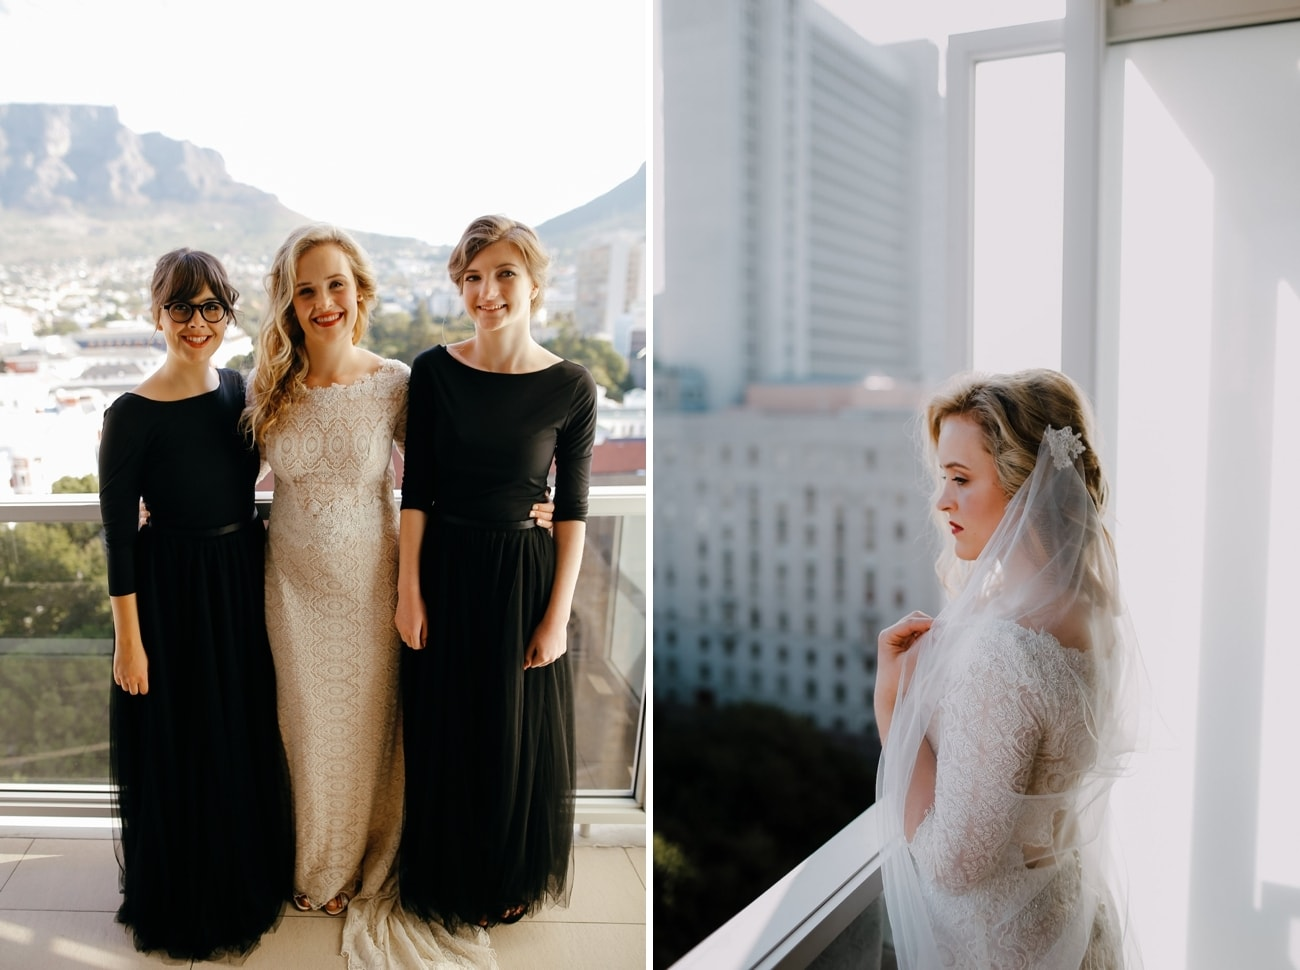 Winter City Wedding | Vintage Chic City Wedding at the Cape Town Club | Credit: Duane Smith